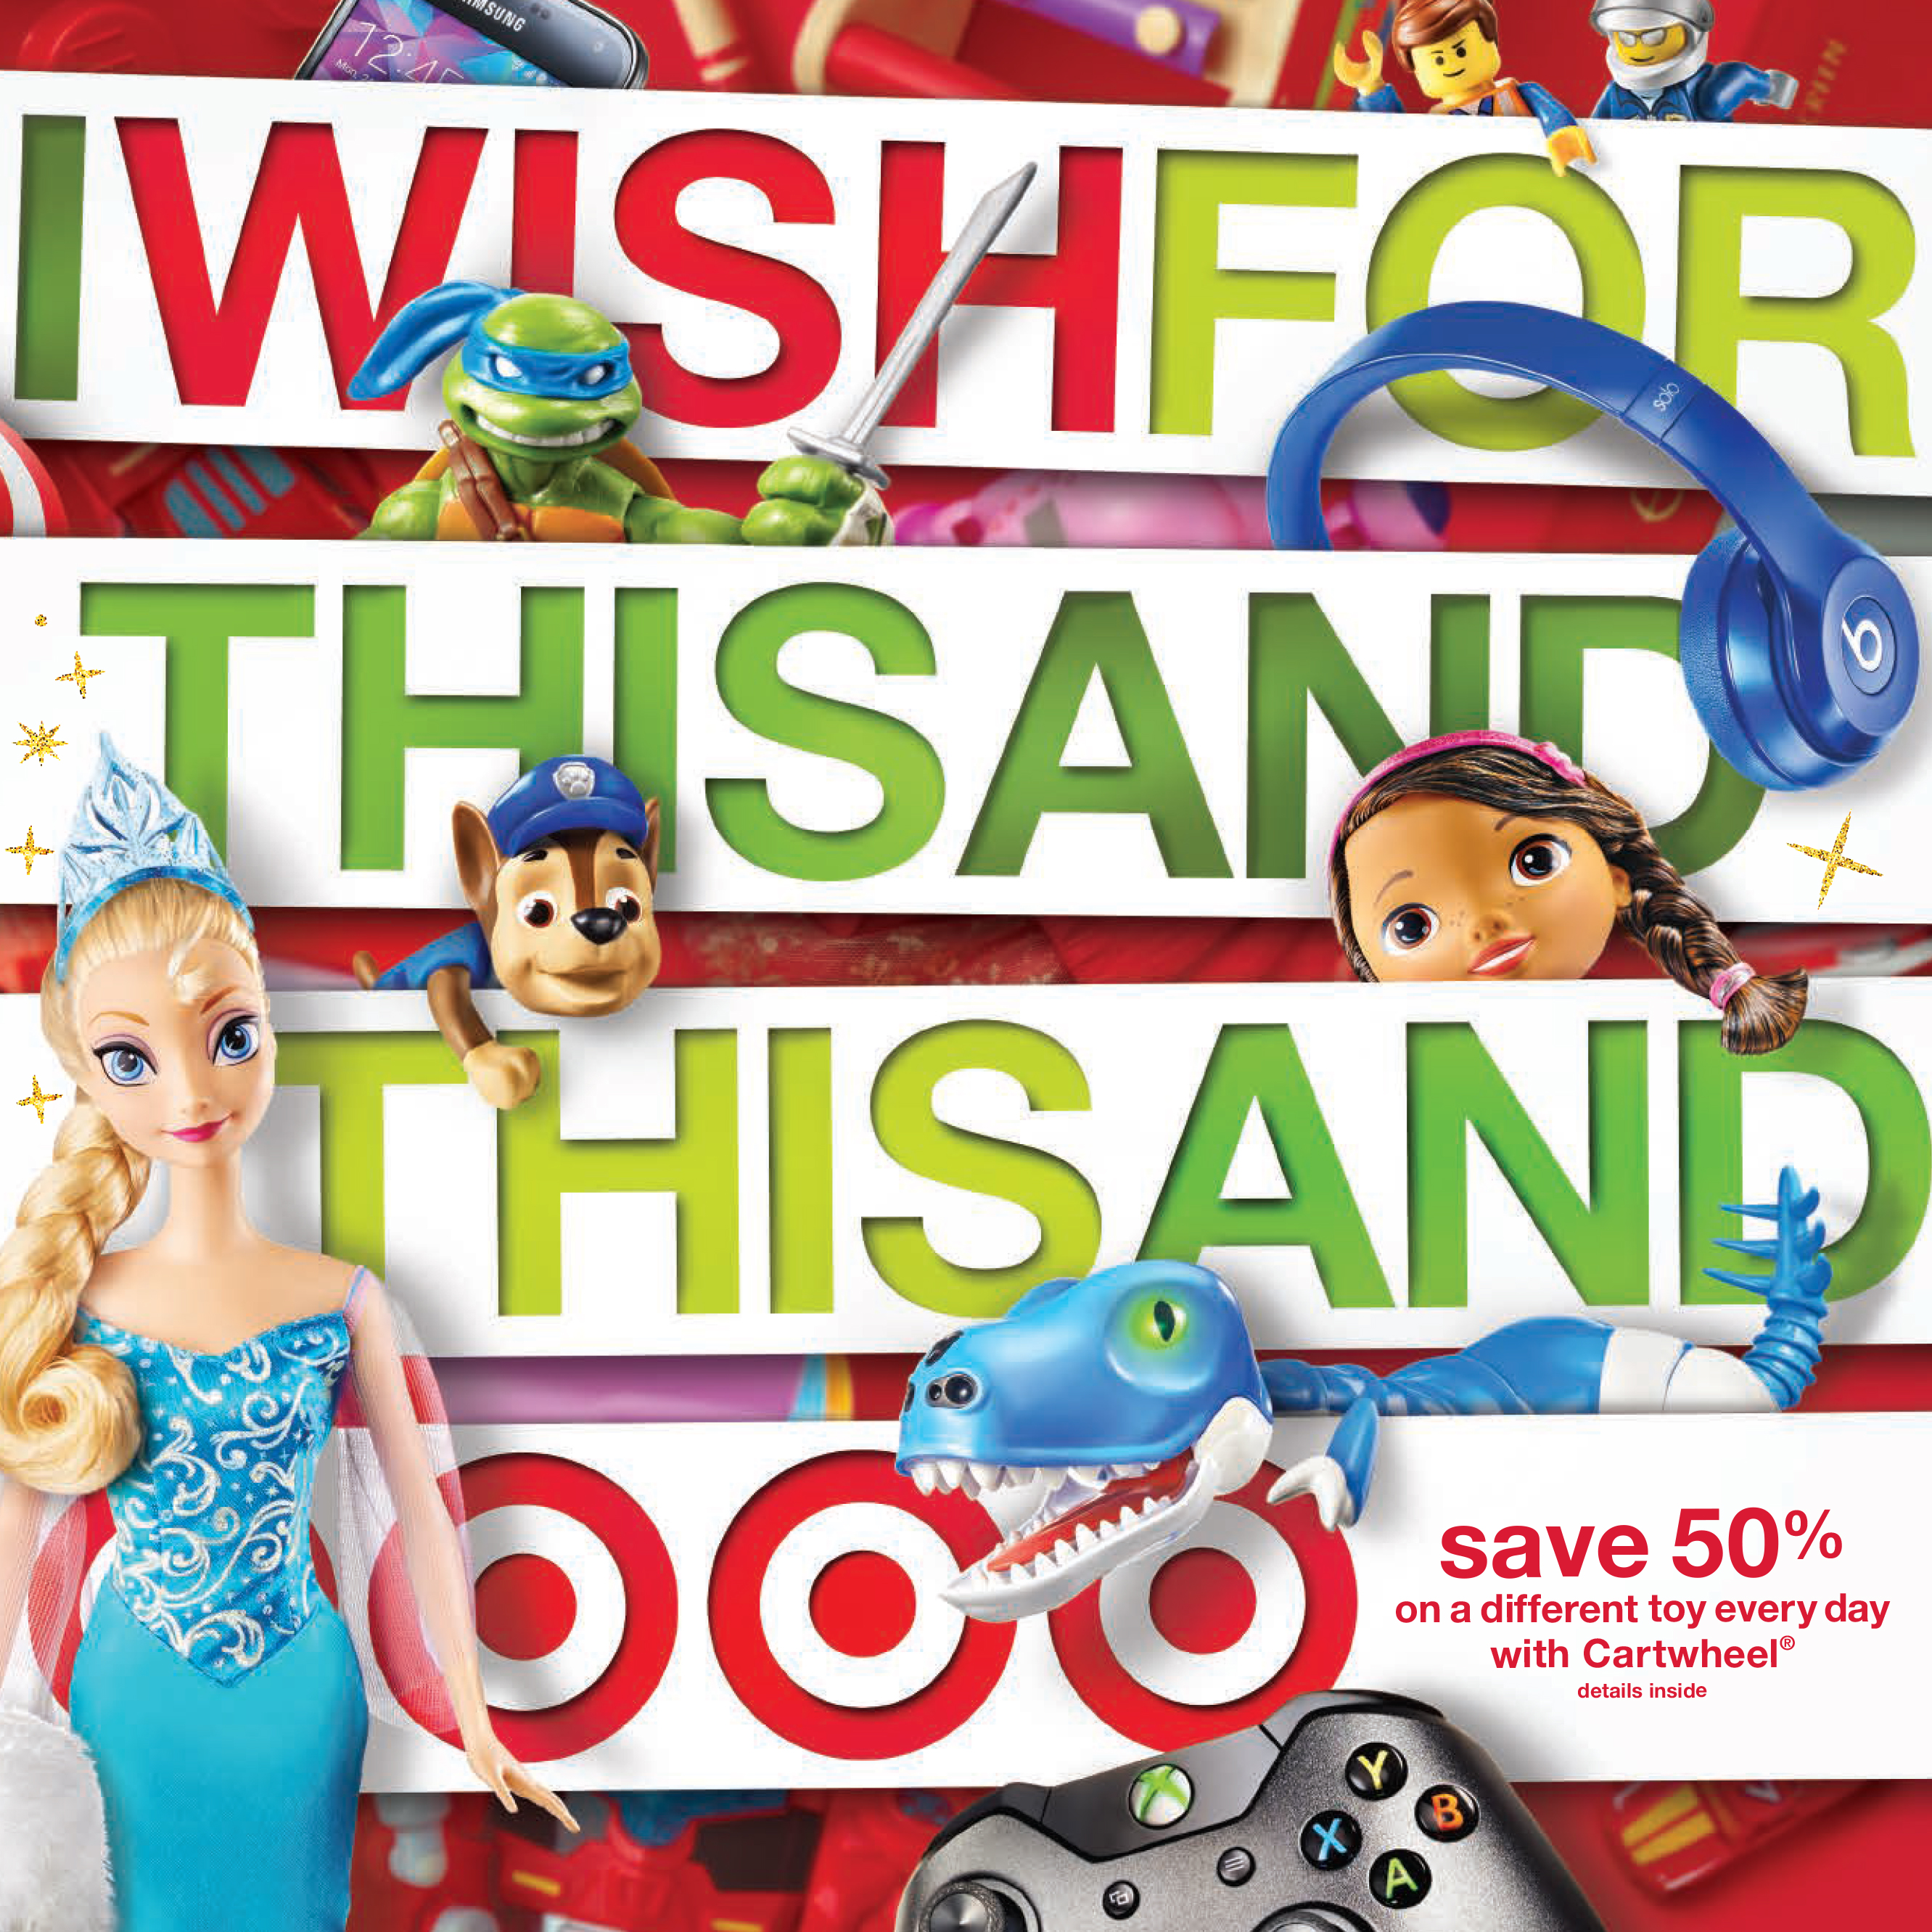 Target Unveils Plans for Holiday 2014